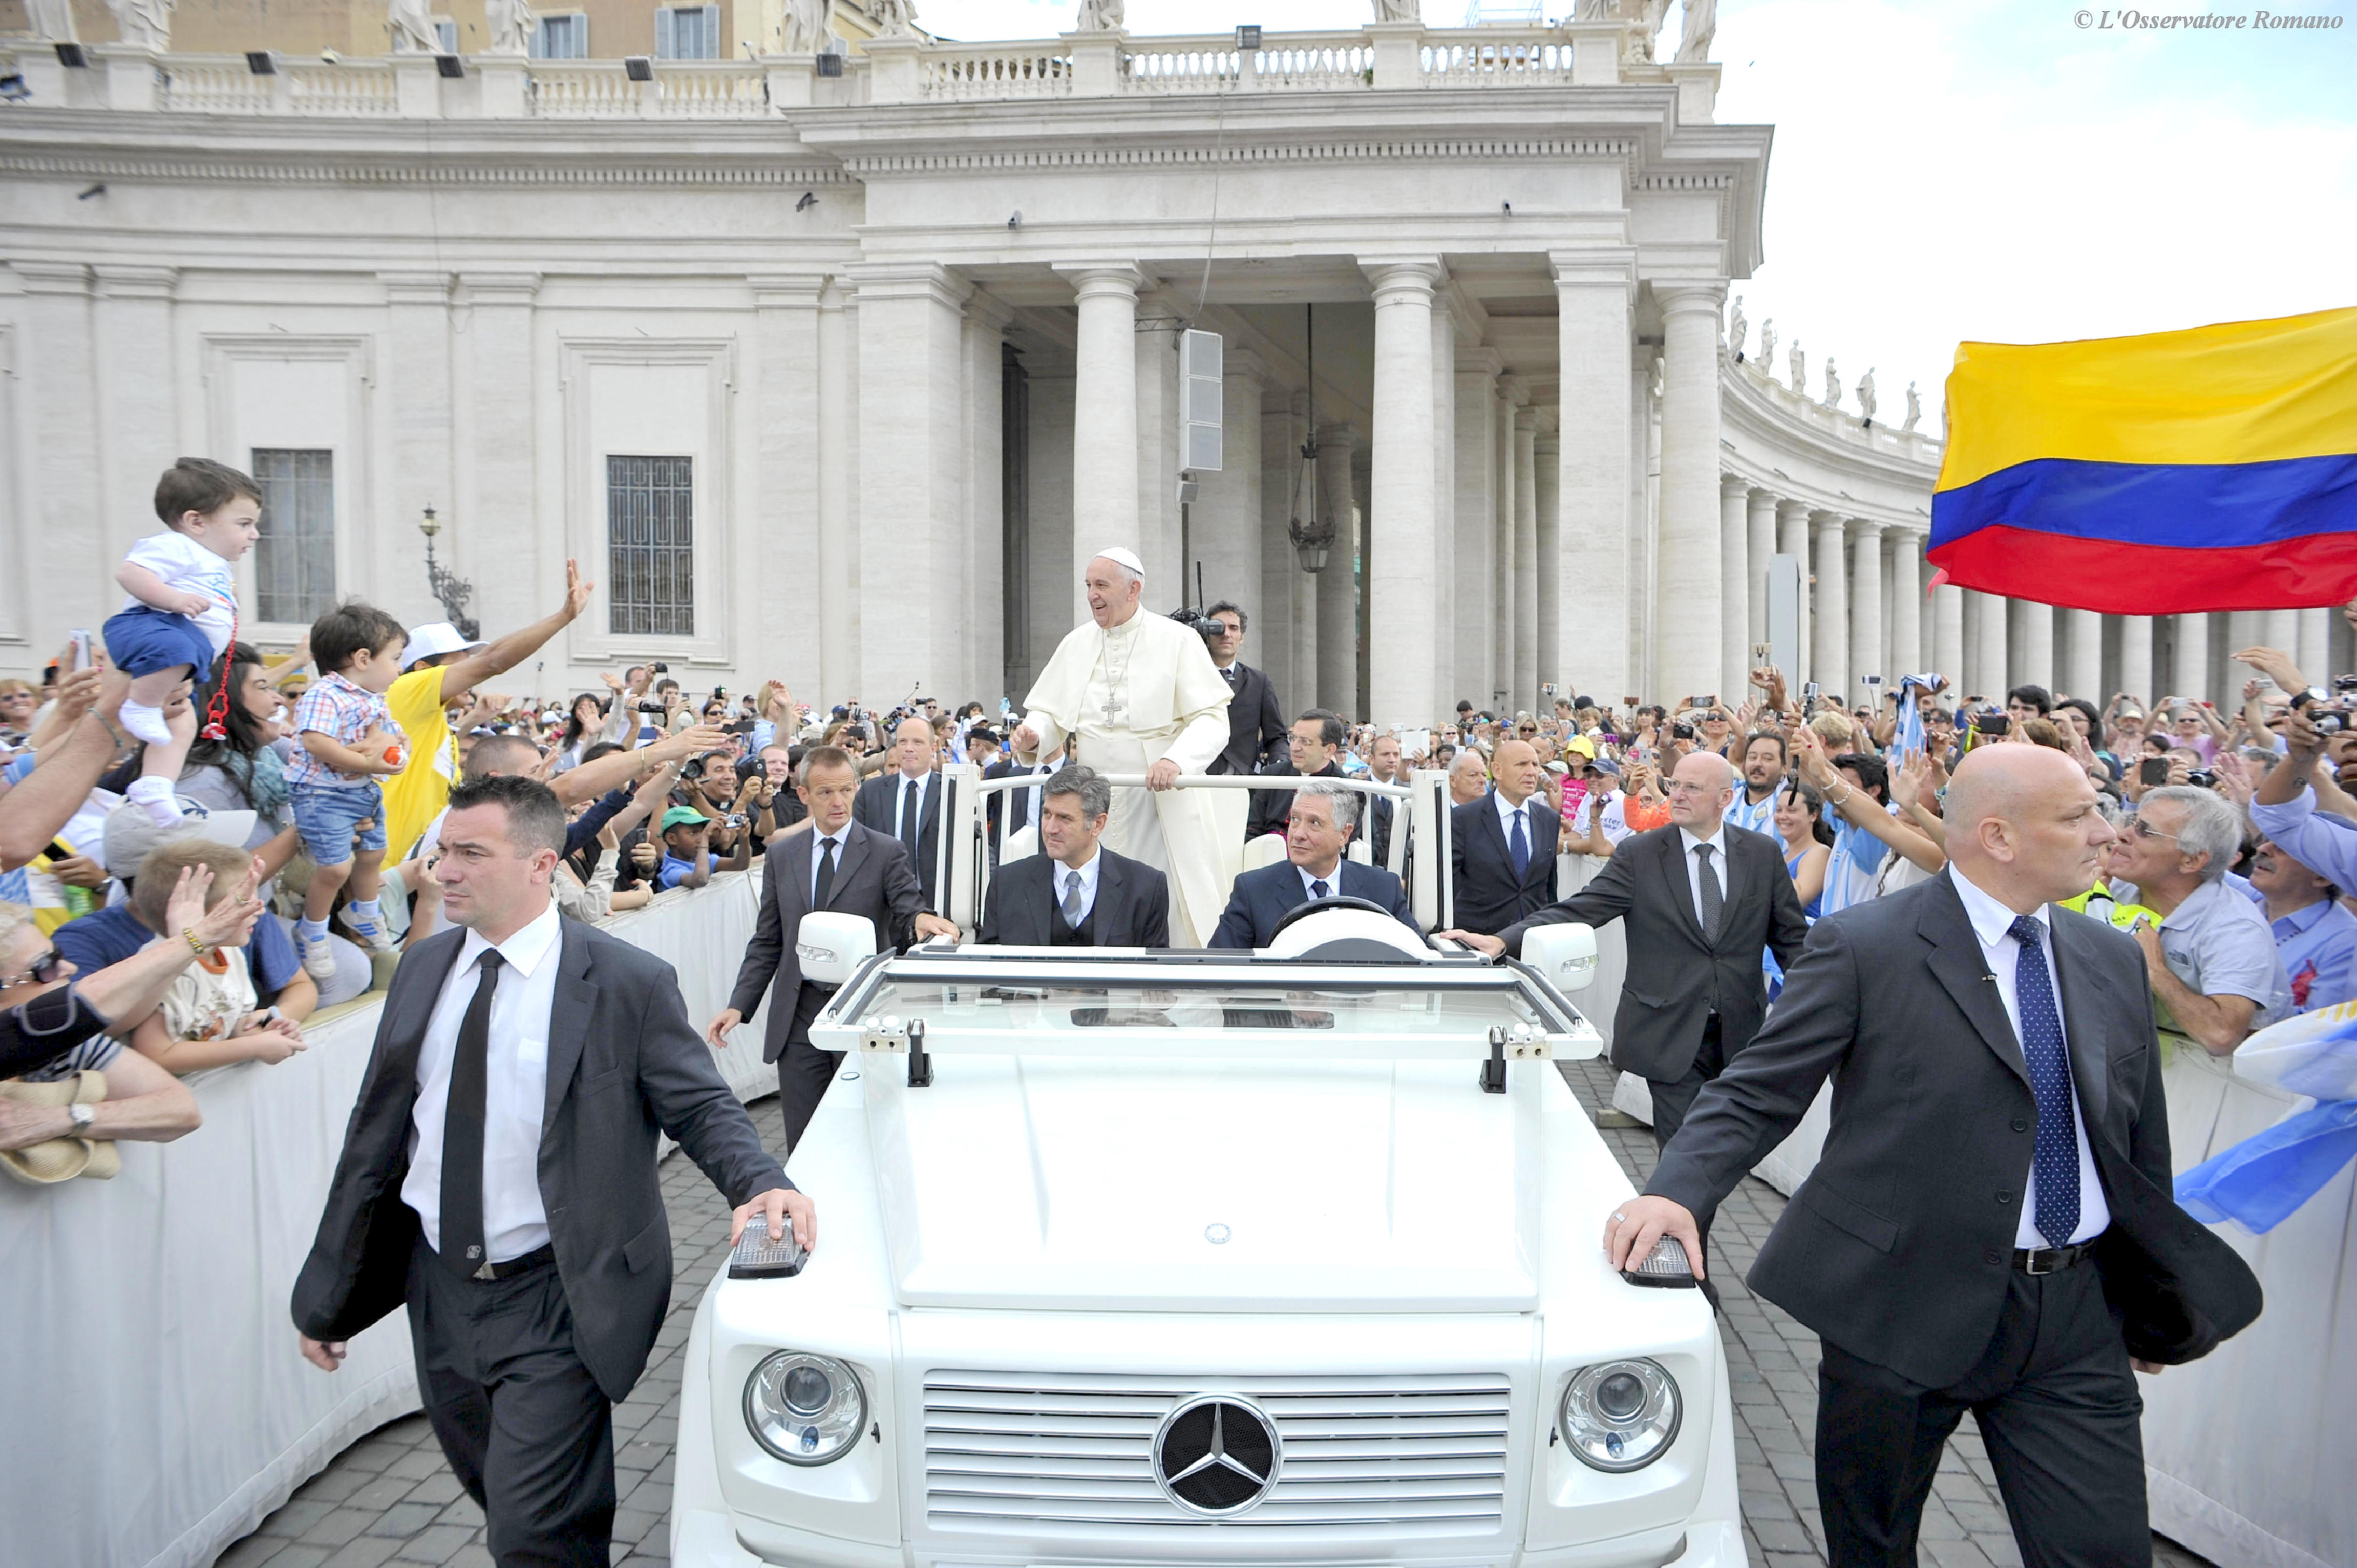 Pope Francis greets the faithful at his weekly general audience